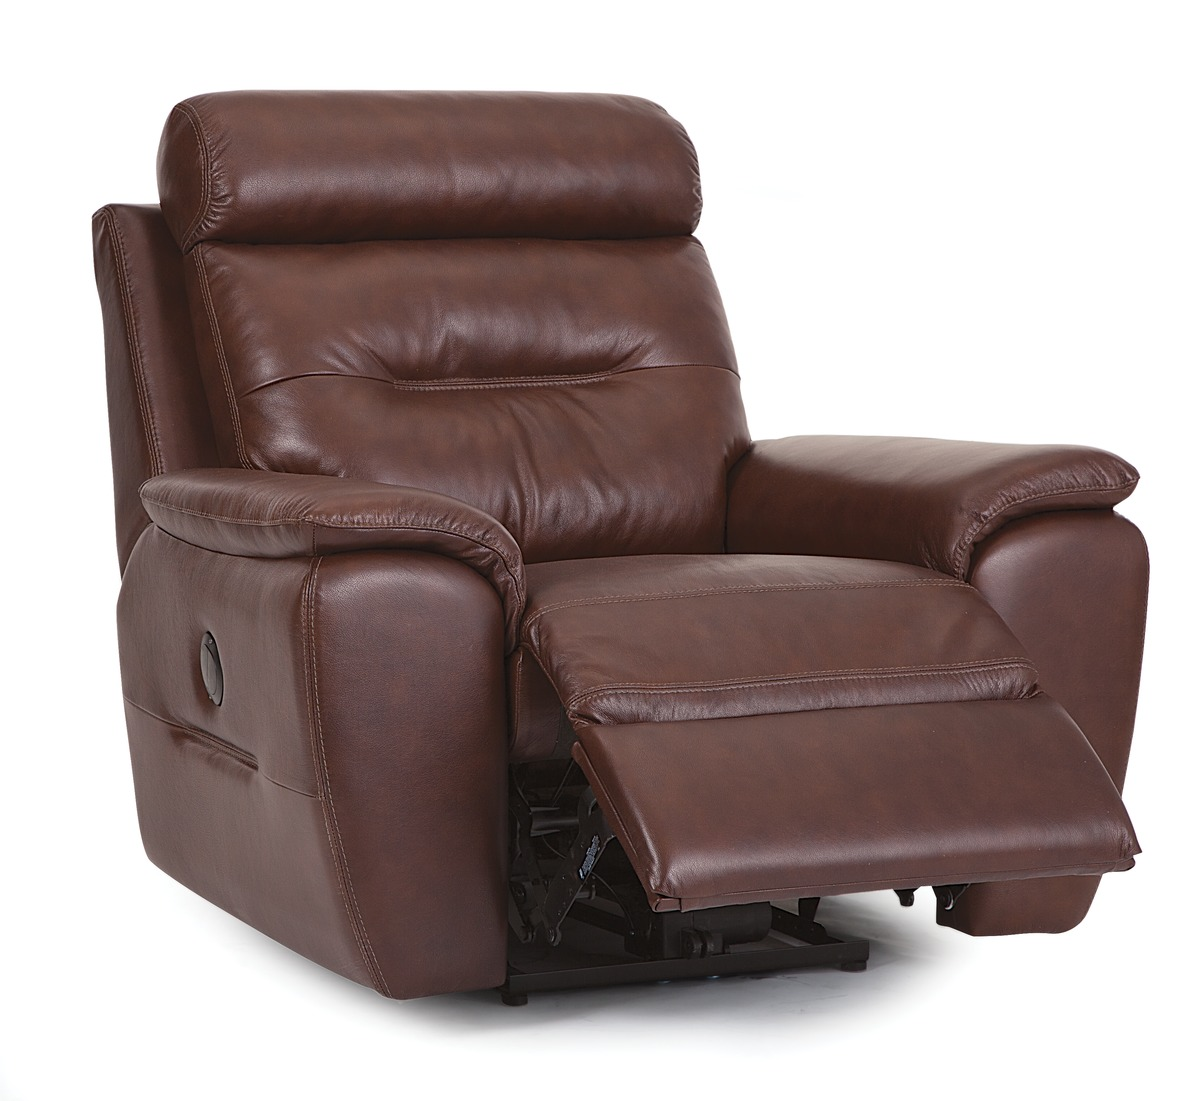 Palliser Furniture Arlington Swivel Rocker Recliner 41124 33